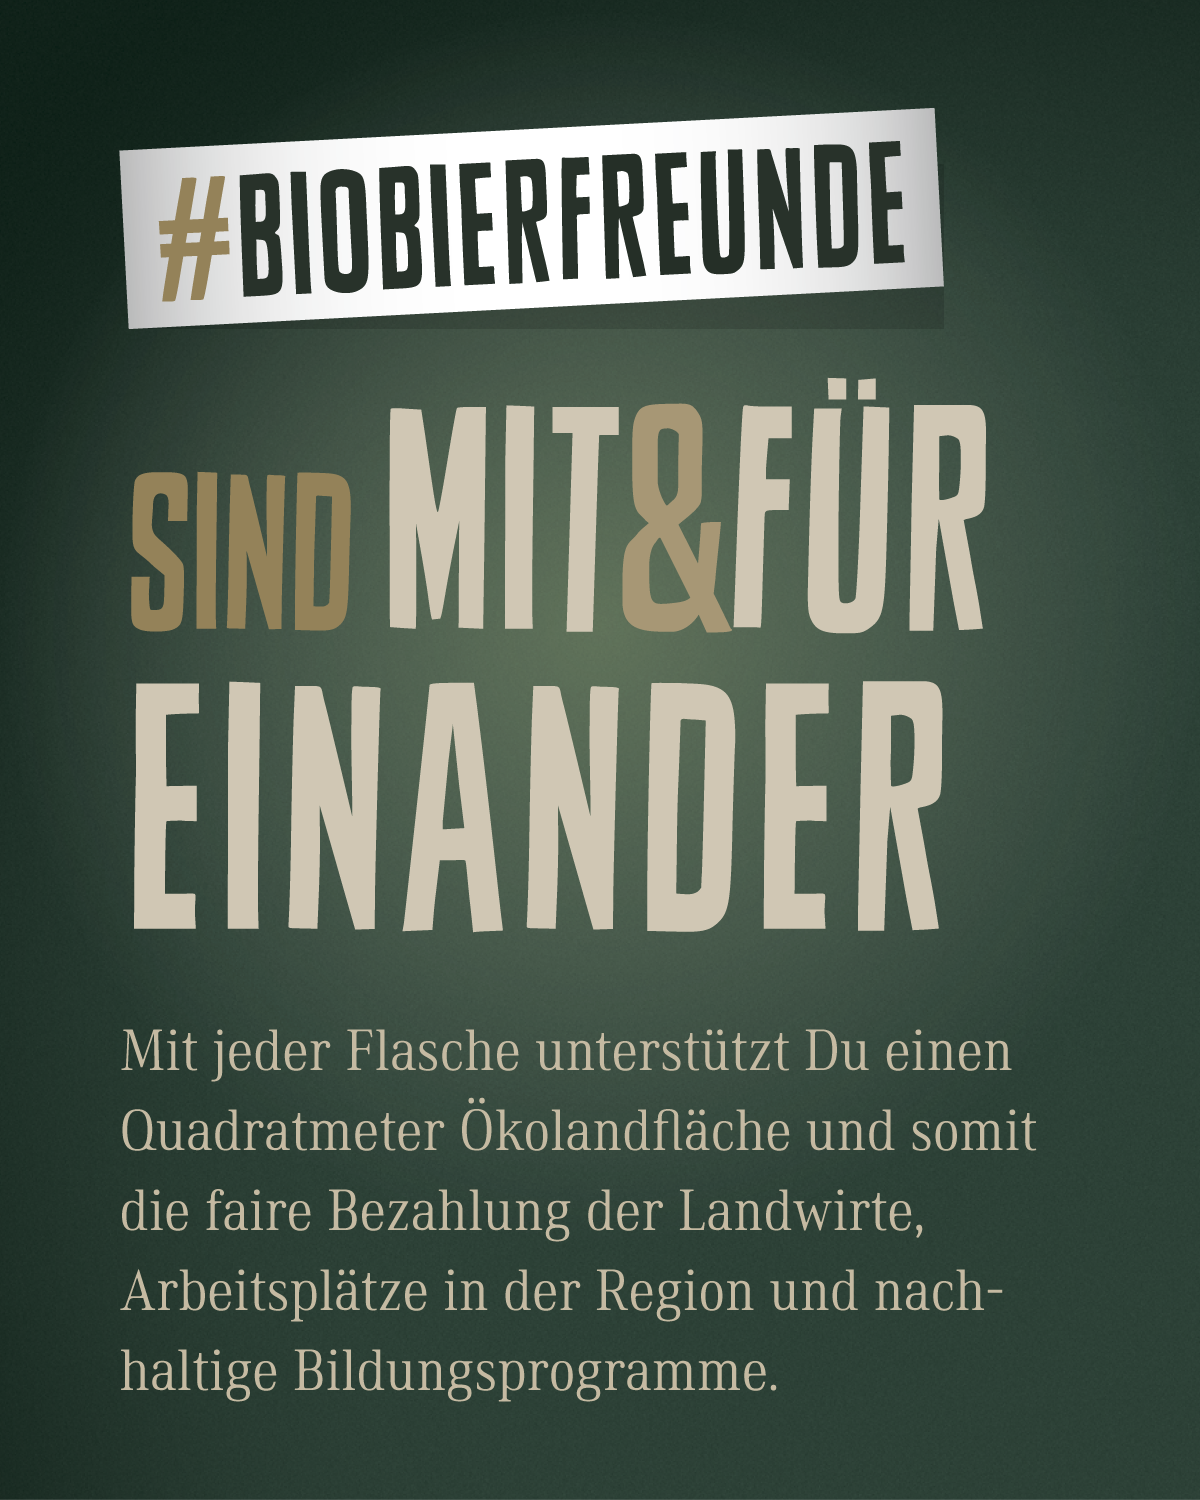 NL_IntegrationBioBierFreunde_Web_MitundFuer